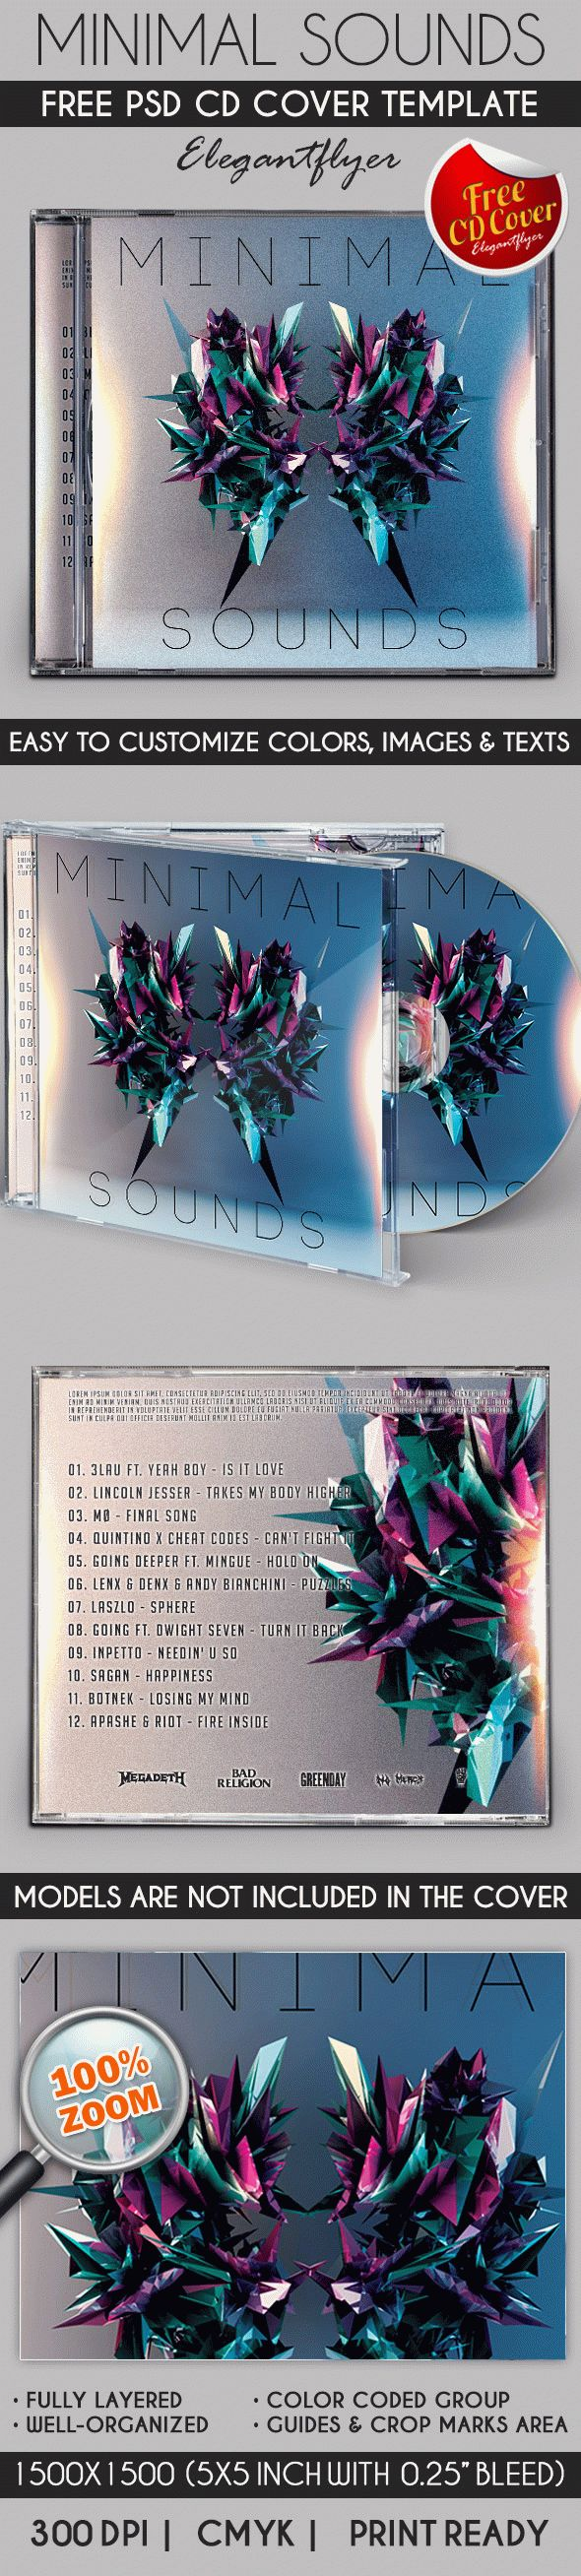 Minimal Sound – Free CD Cover PSD Template